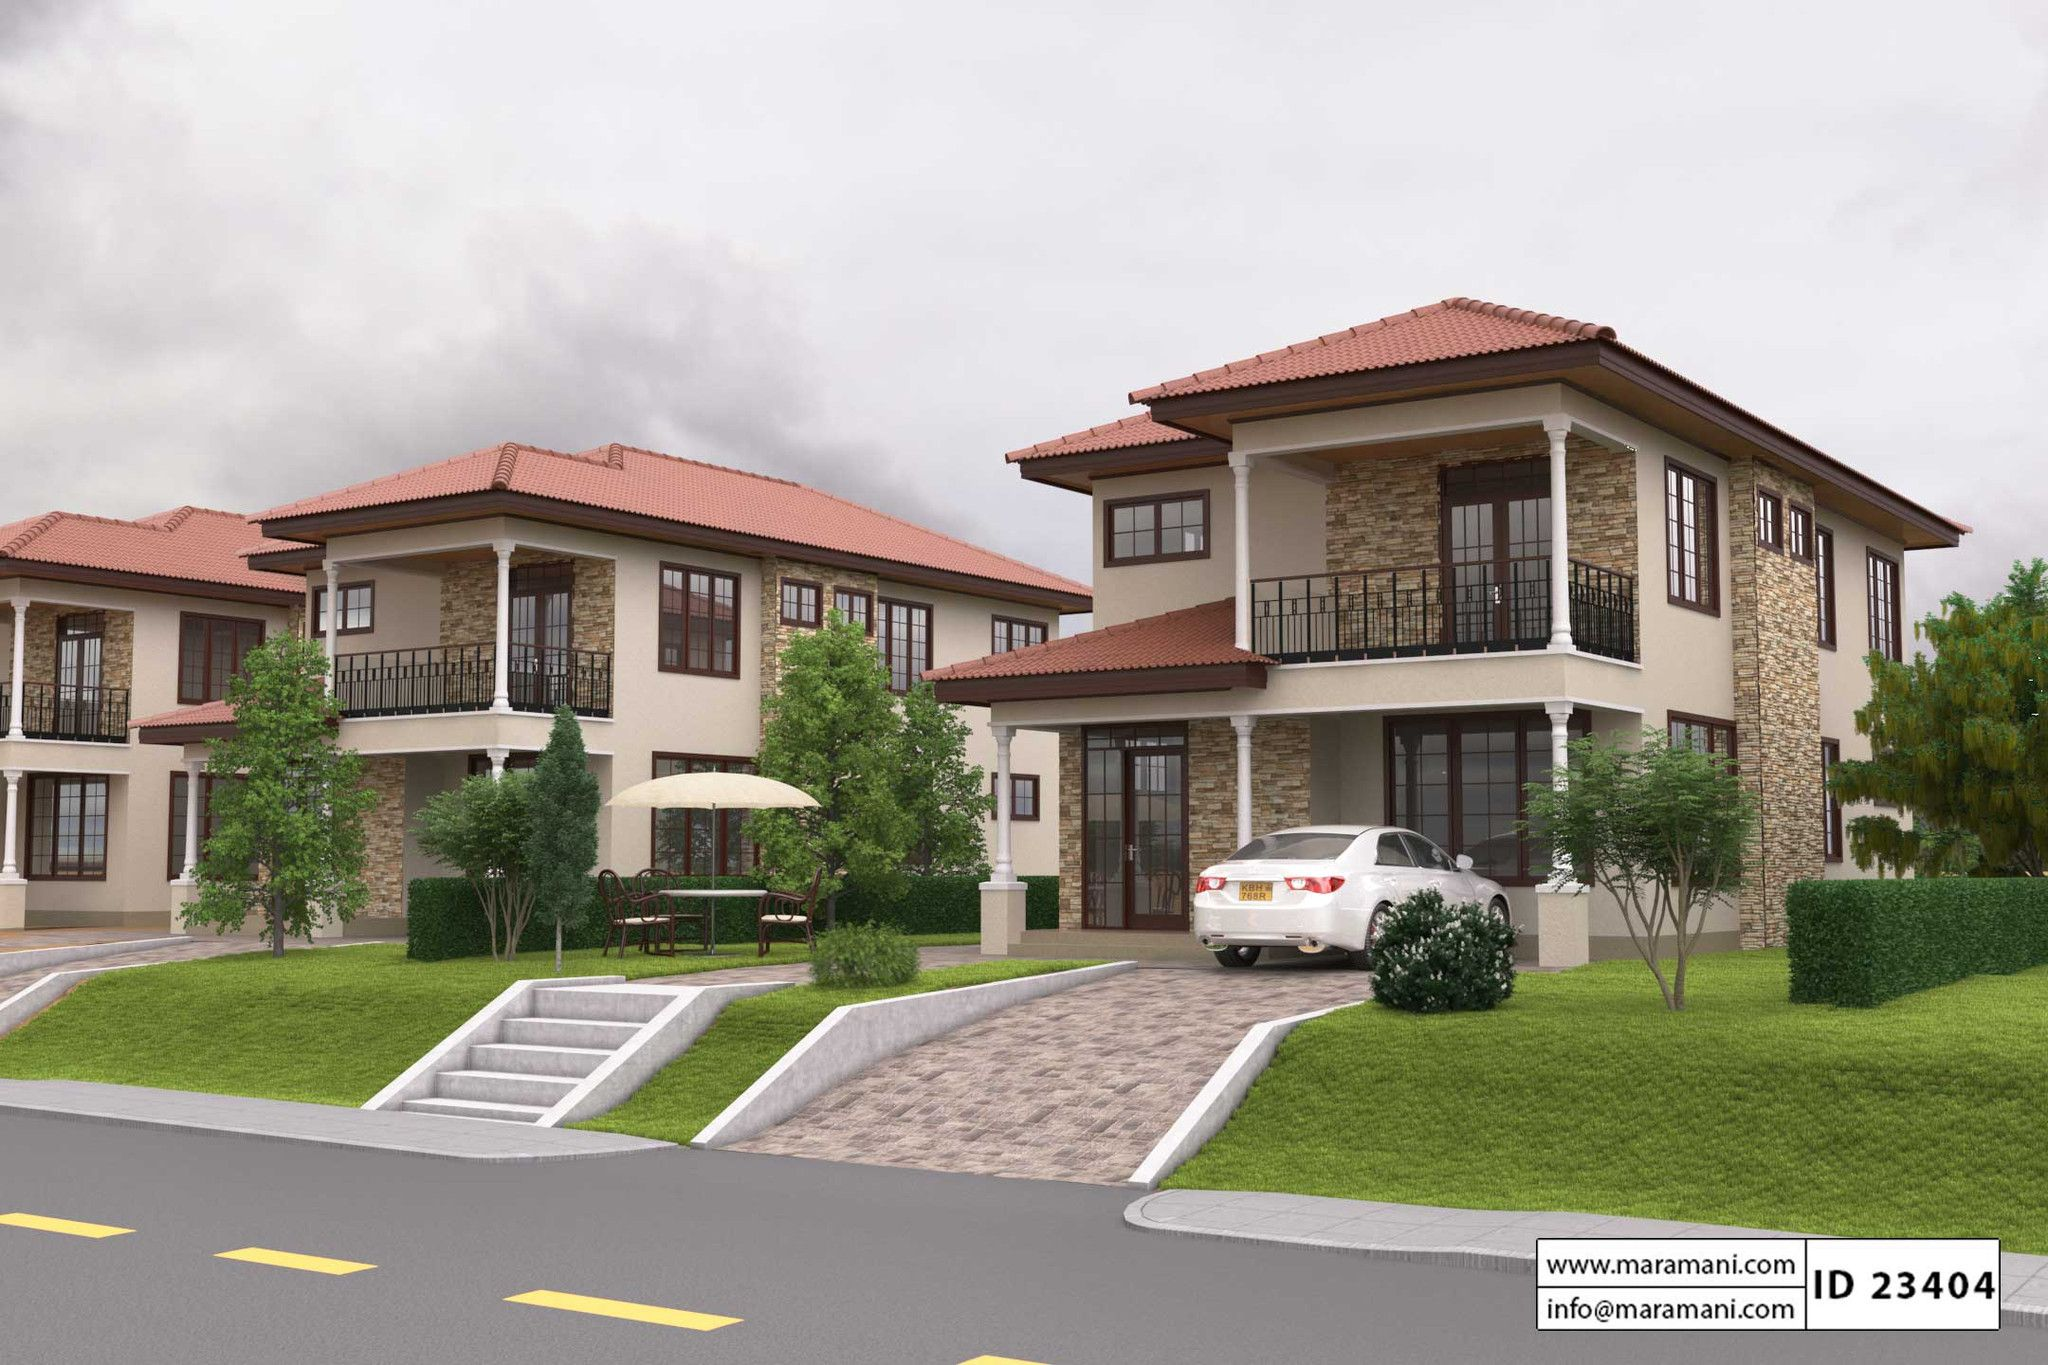 3 bedroom house plan id 23404 bedrooms and house for Mansion plan